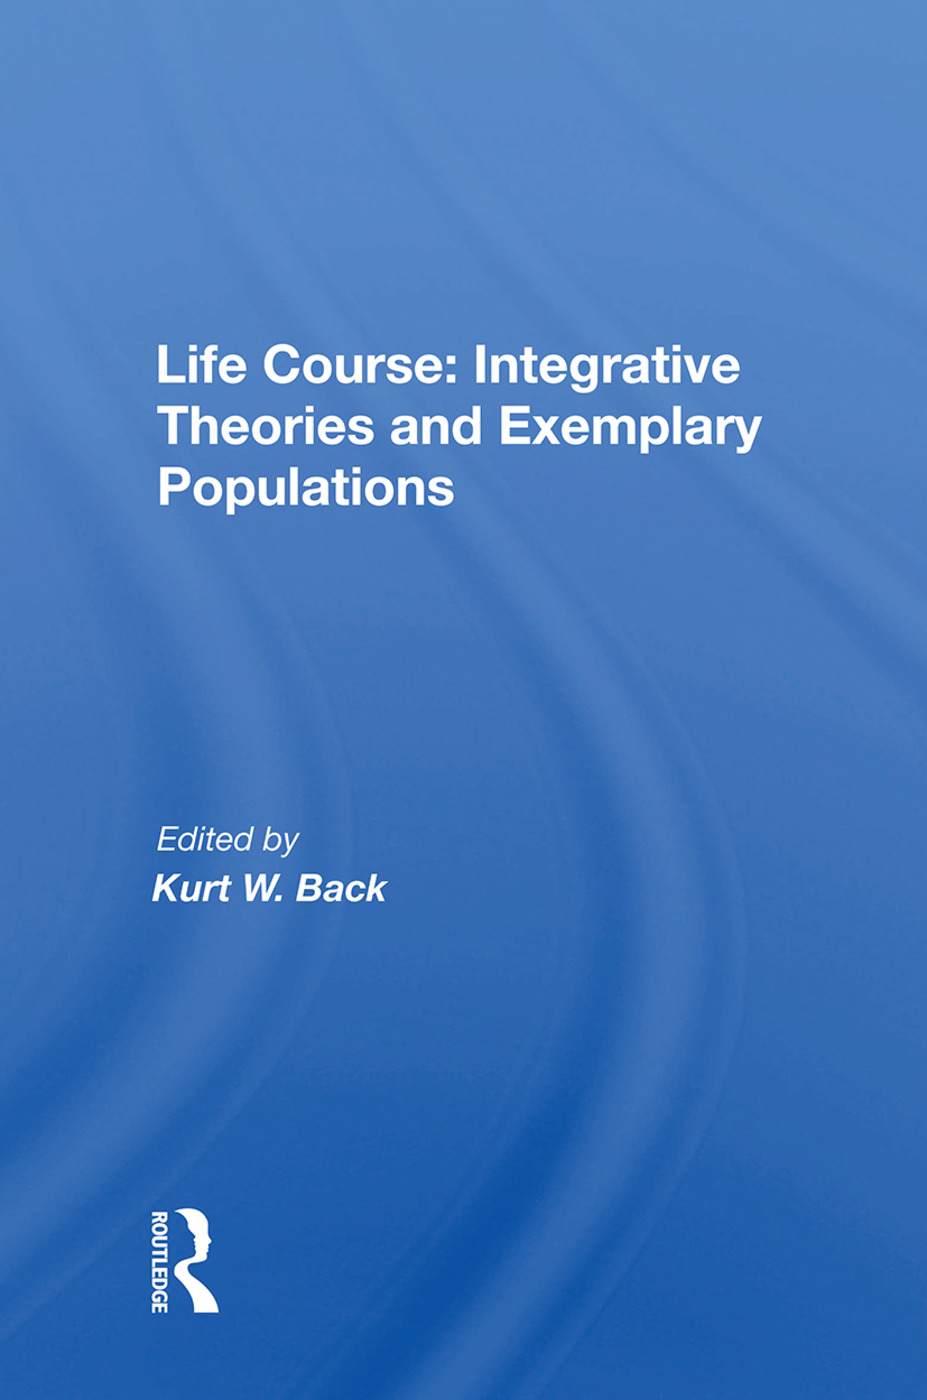 Life Course: Integrative Theories And Exemplary Populations book cover